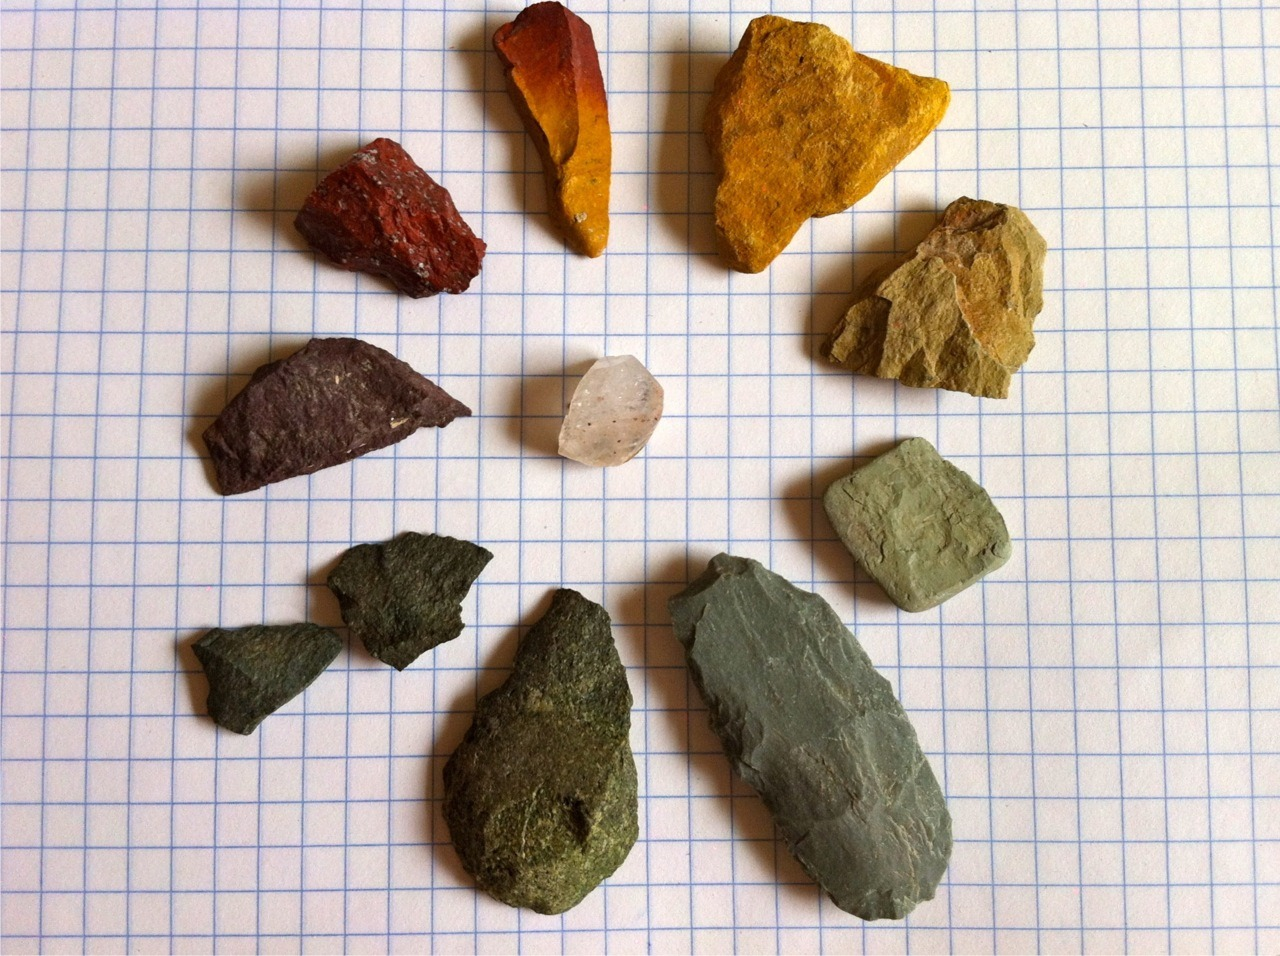 SUBMISSION: Colorful chert flakes and quartz from Las Trincheras, Sonora, Mexico.